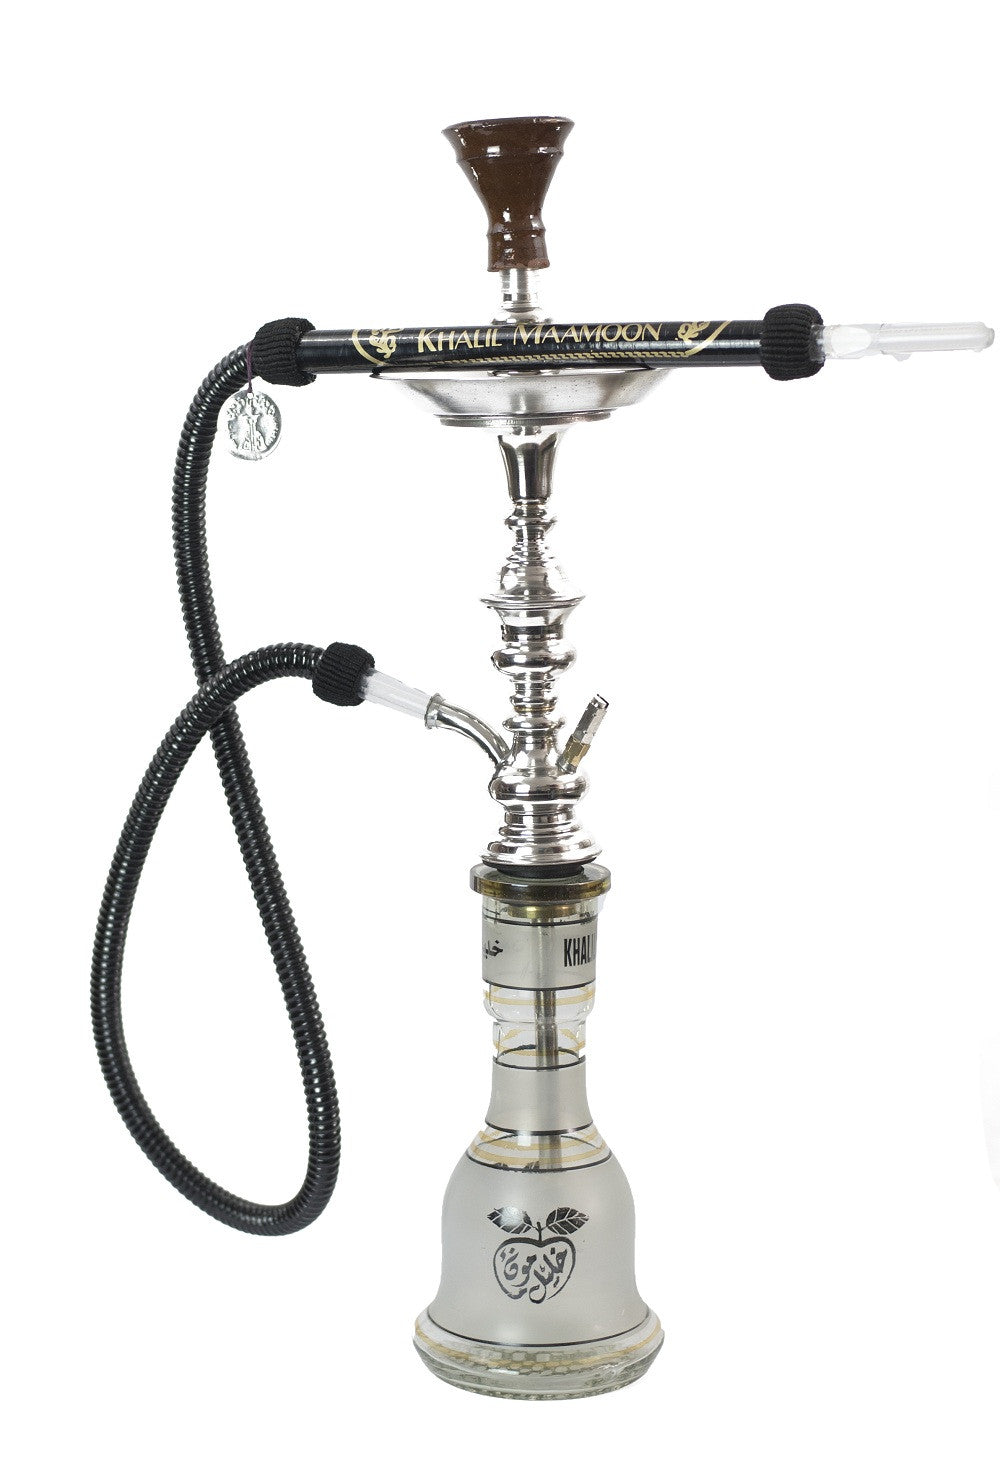 Khalil Mamoon Cafe Style Hookah - shishagear london uk